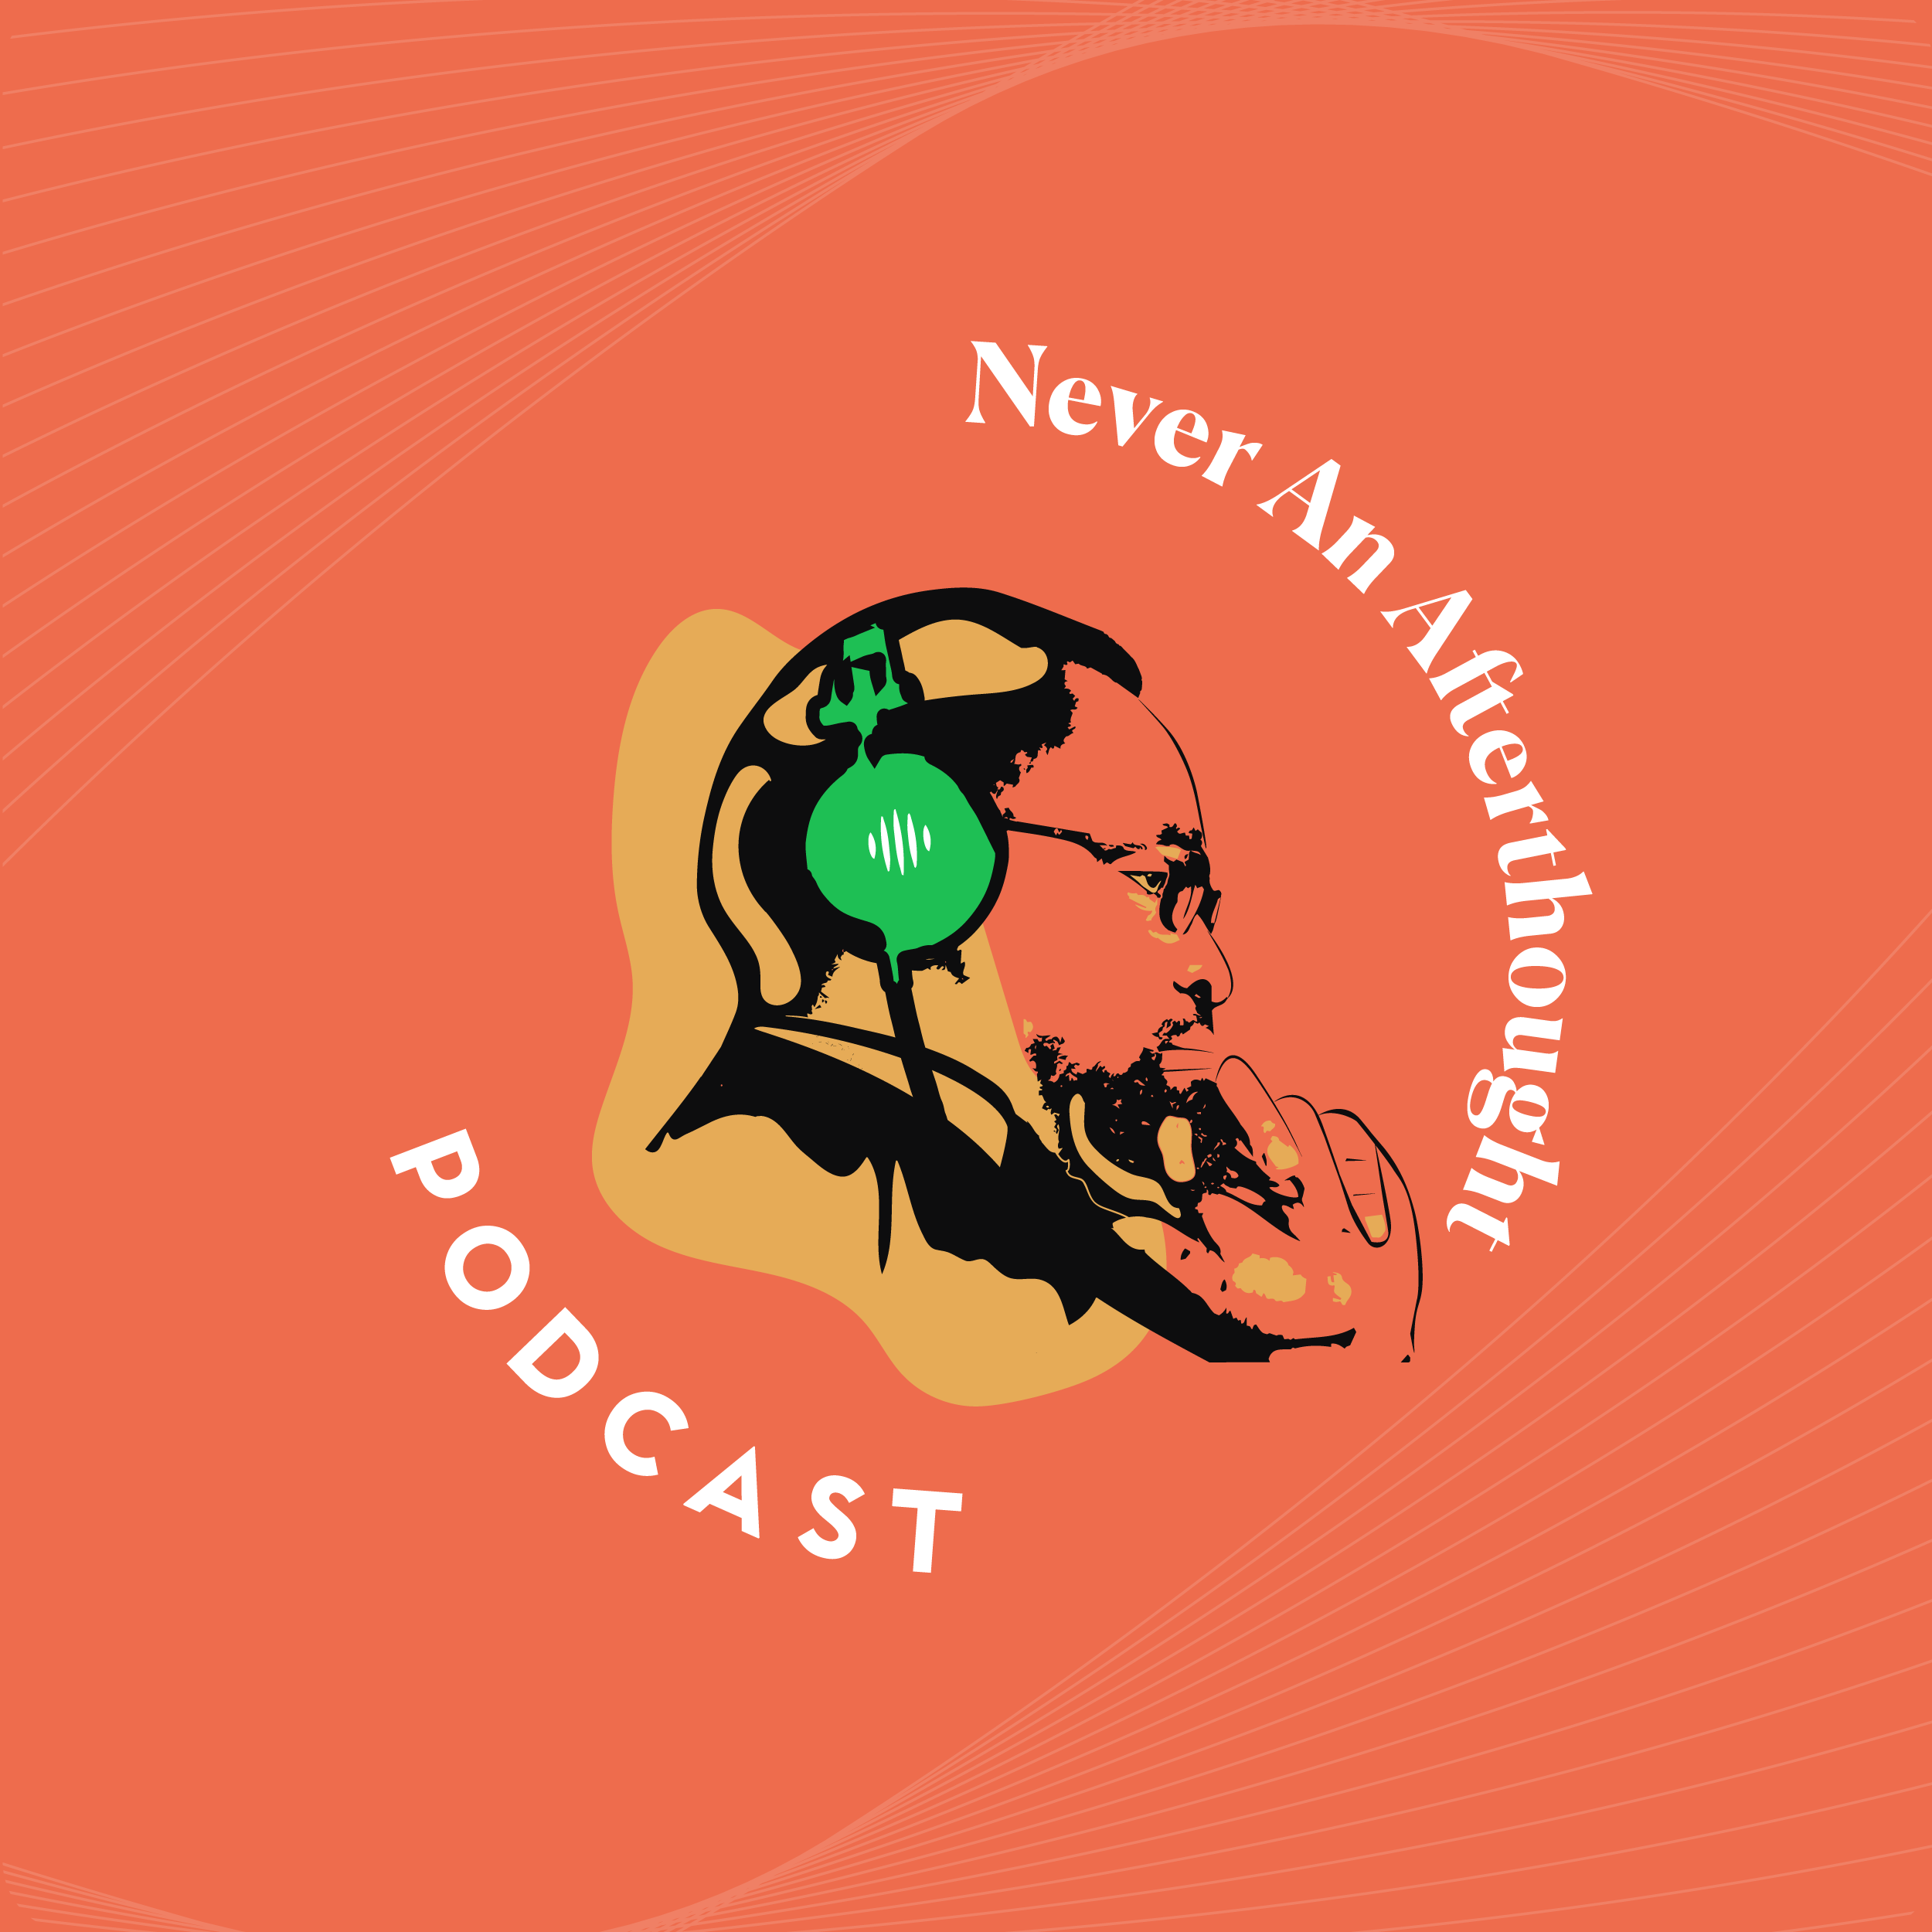 Never an Afterthought by Afolabi Sokpehi Imoukhuede Podcast Cover Art